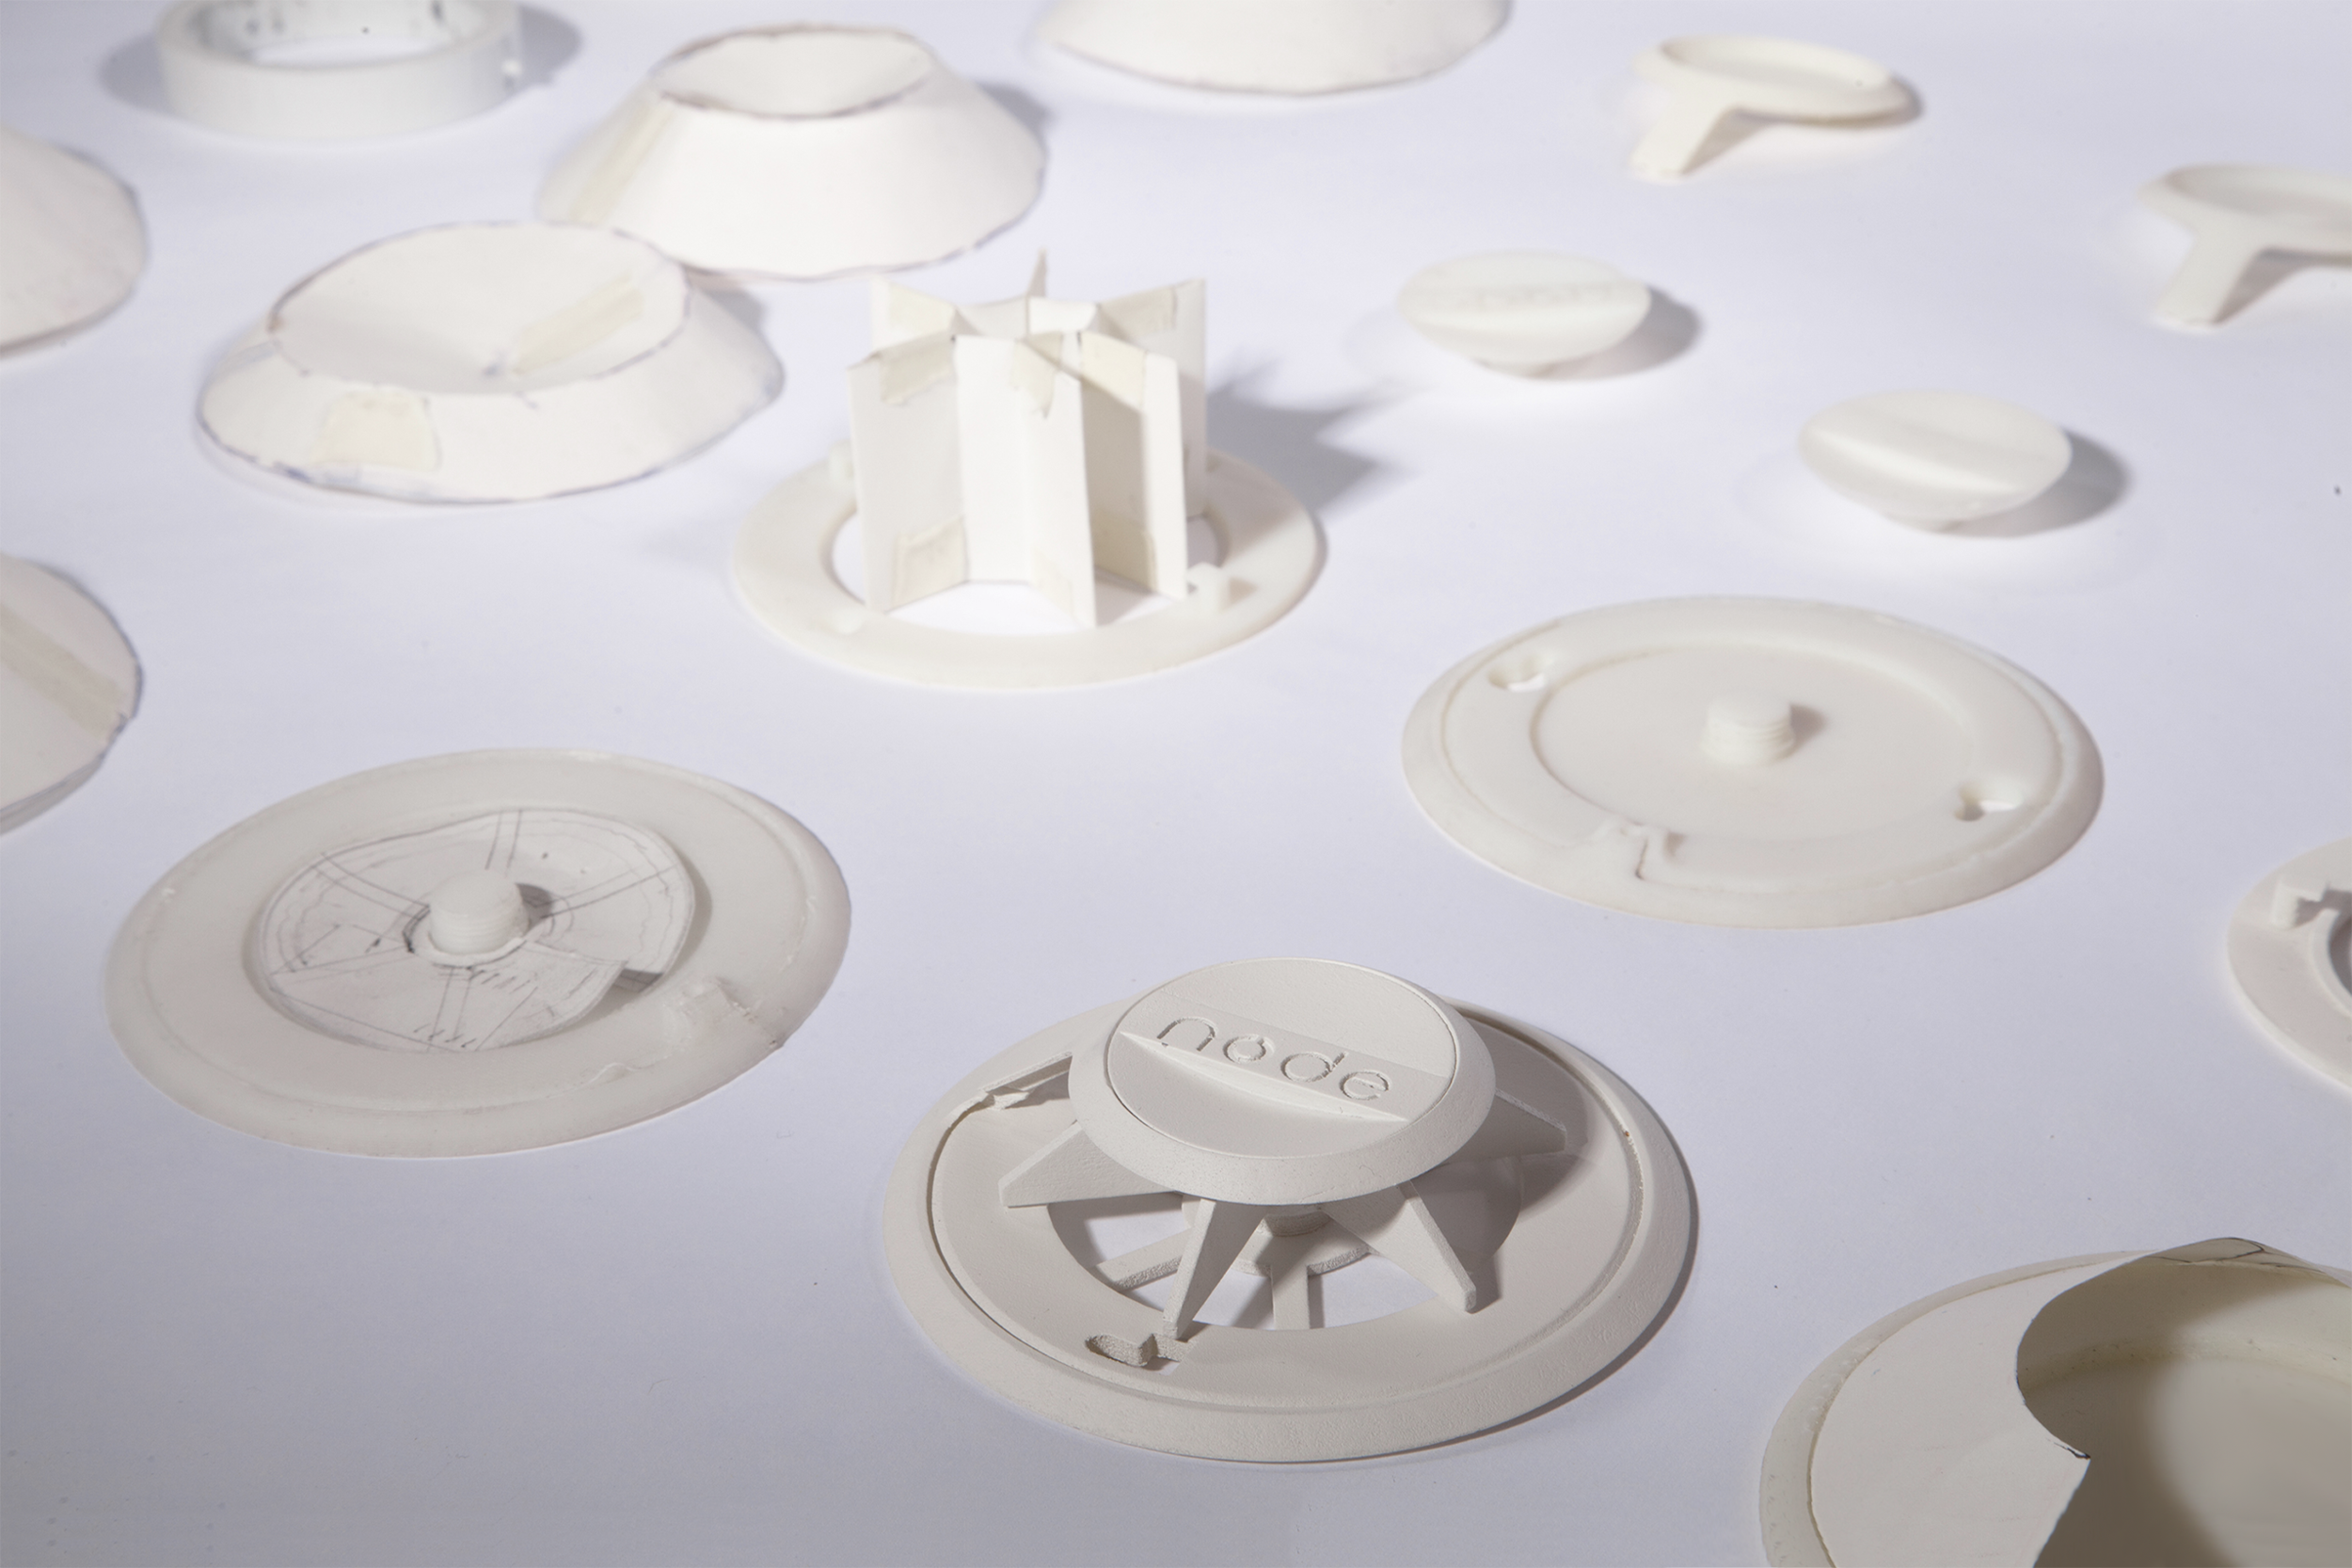 Prototyping - The design went through dozens of iterations to refine the size, shape, look and feel of the product.